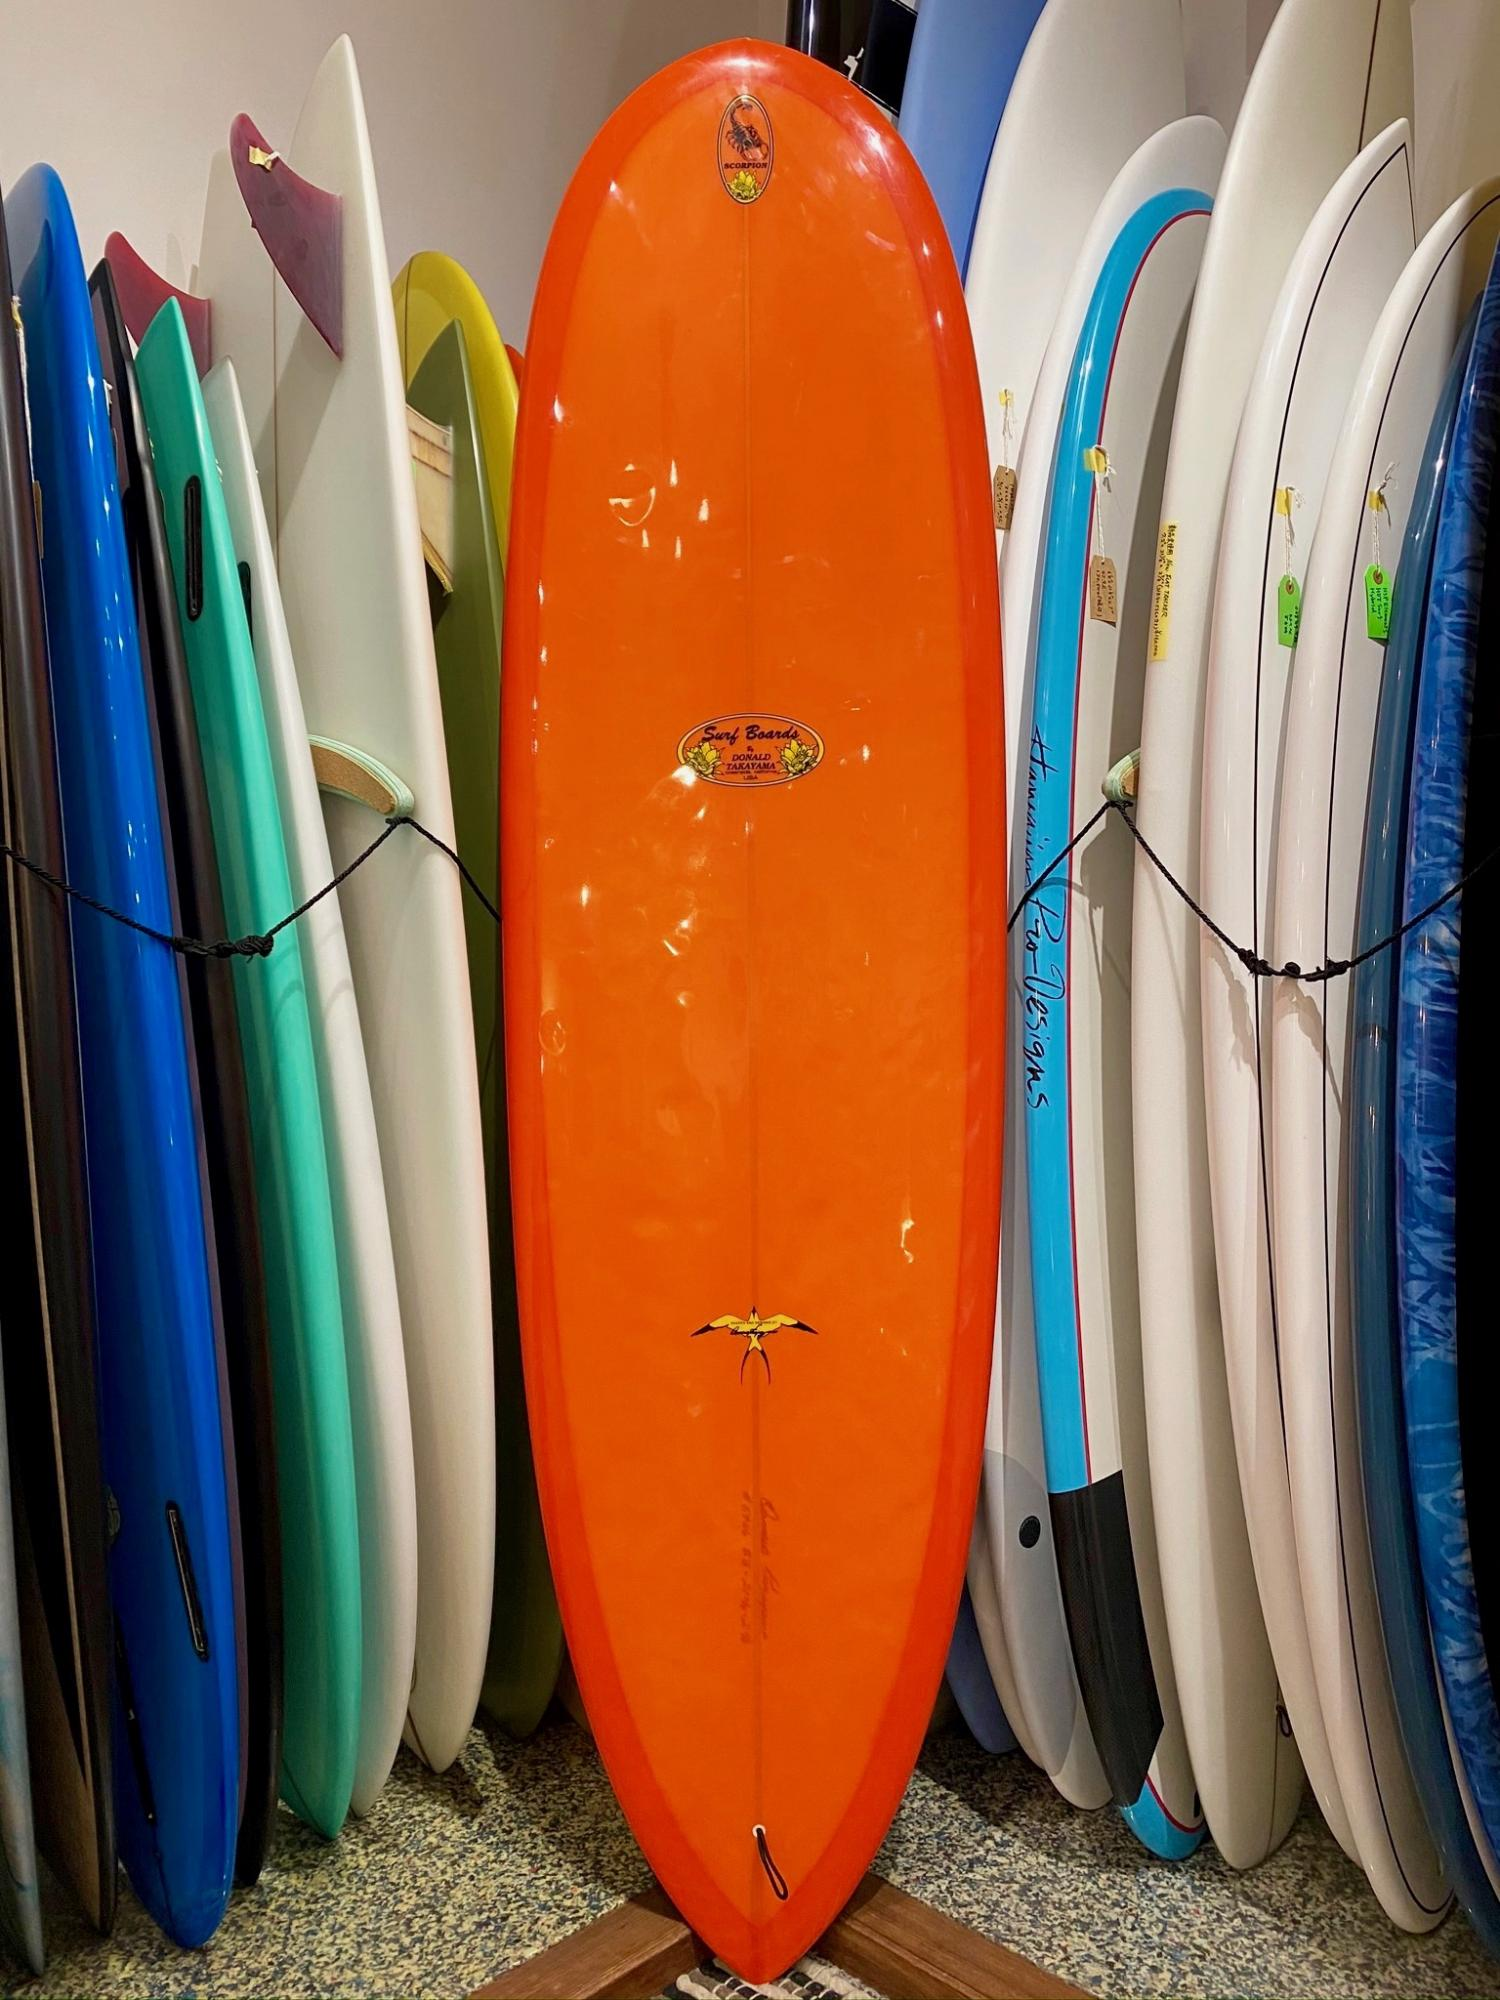 USED BOARDS (H.P.D. Takayama 6.8 Scorpion)